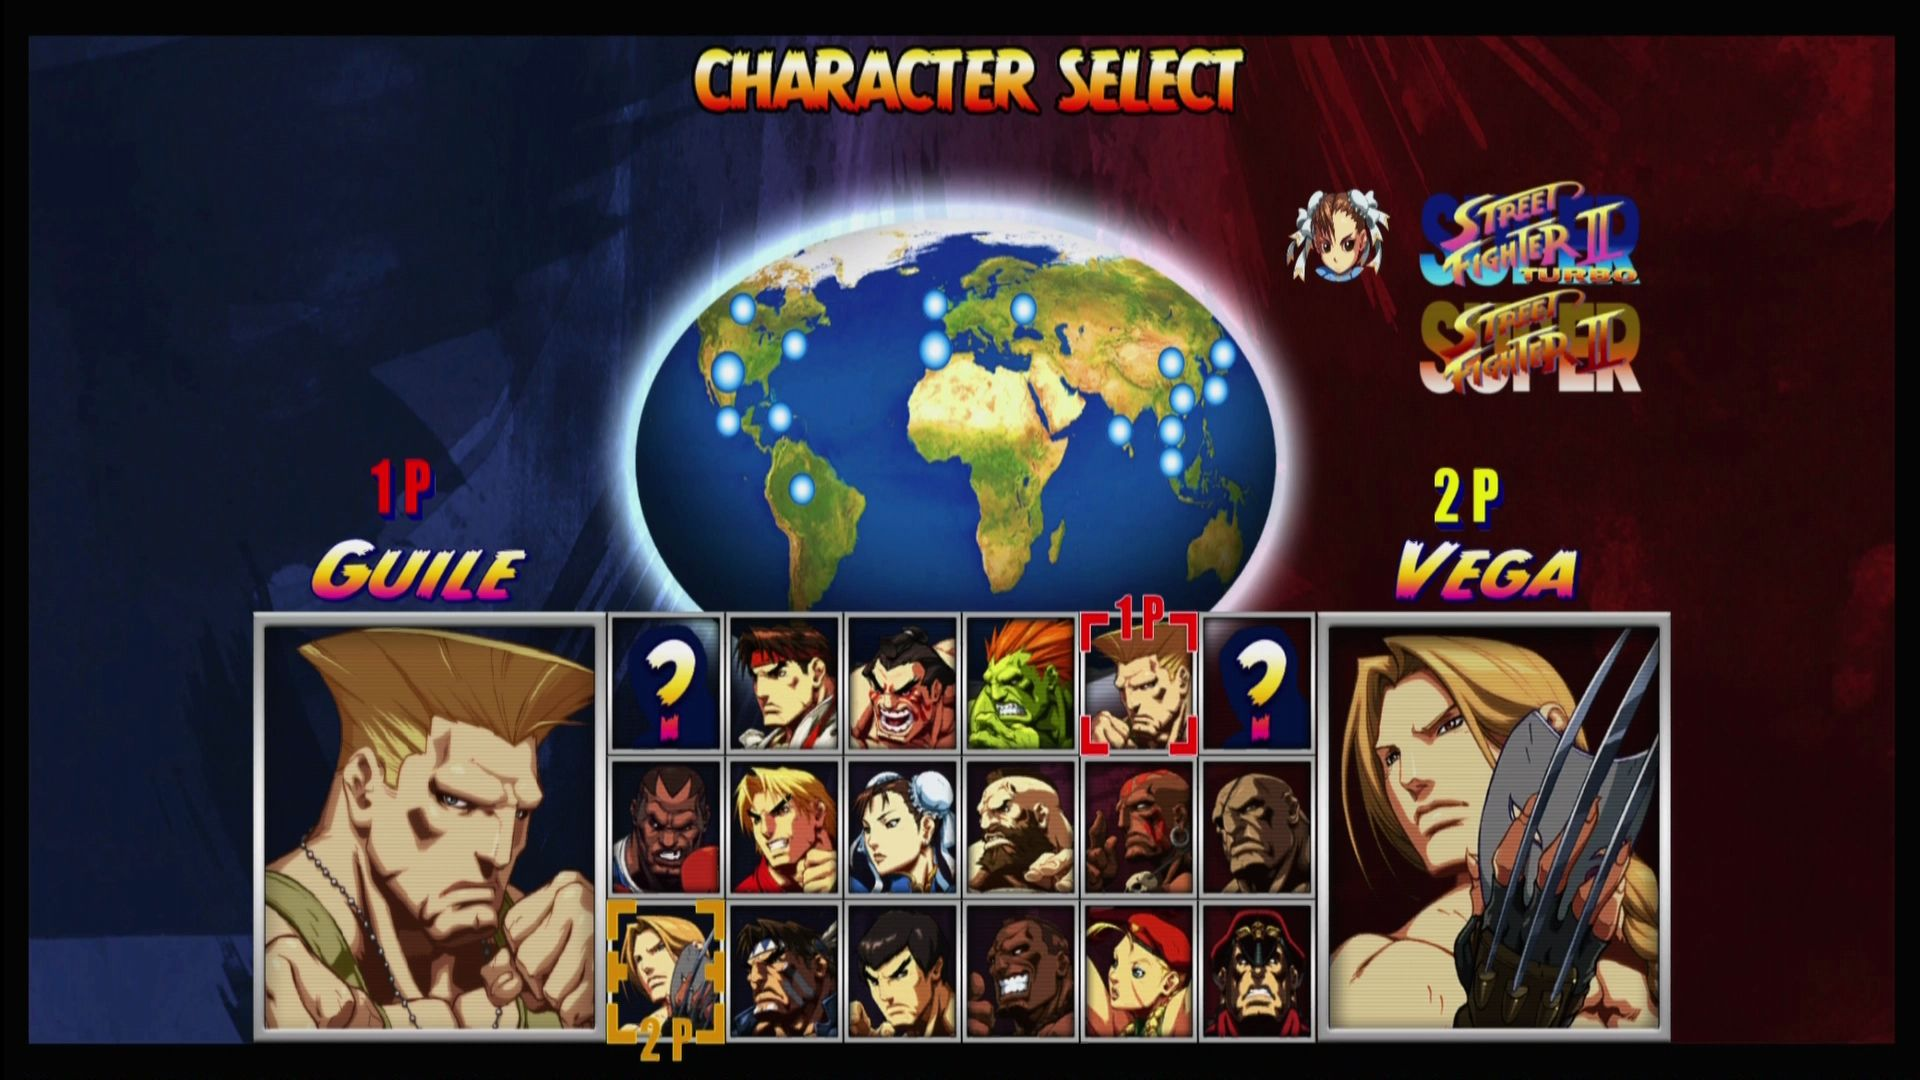 Super Street Fighter 2 Turbo Hd Remix Pc Game Download - zipsoft-softtop